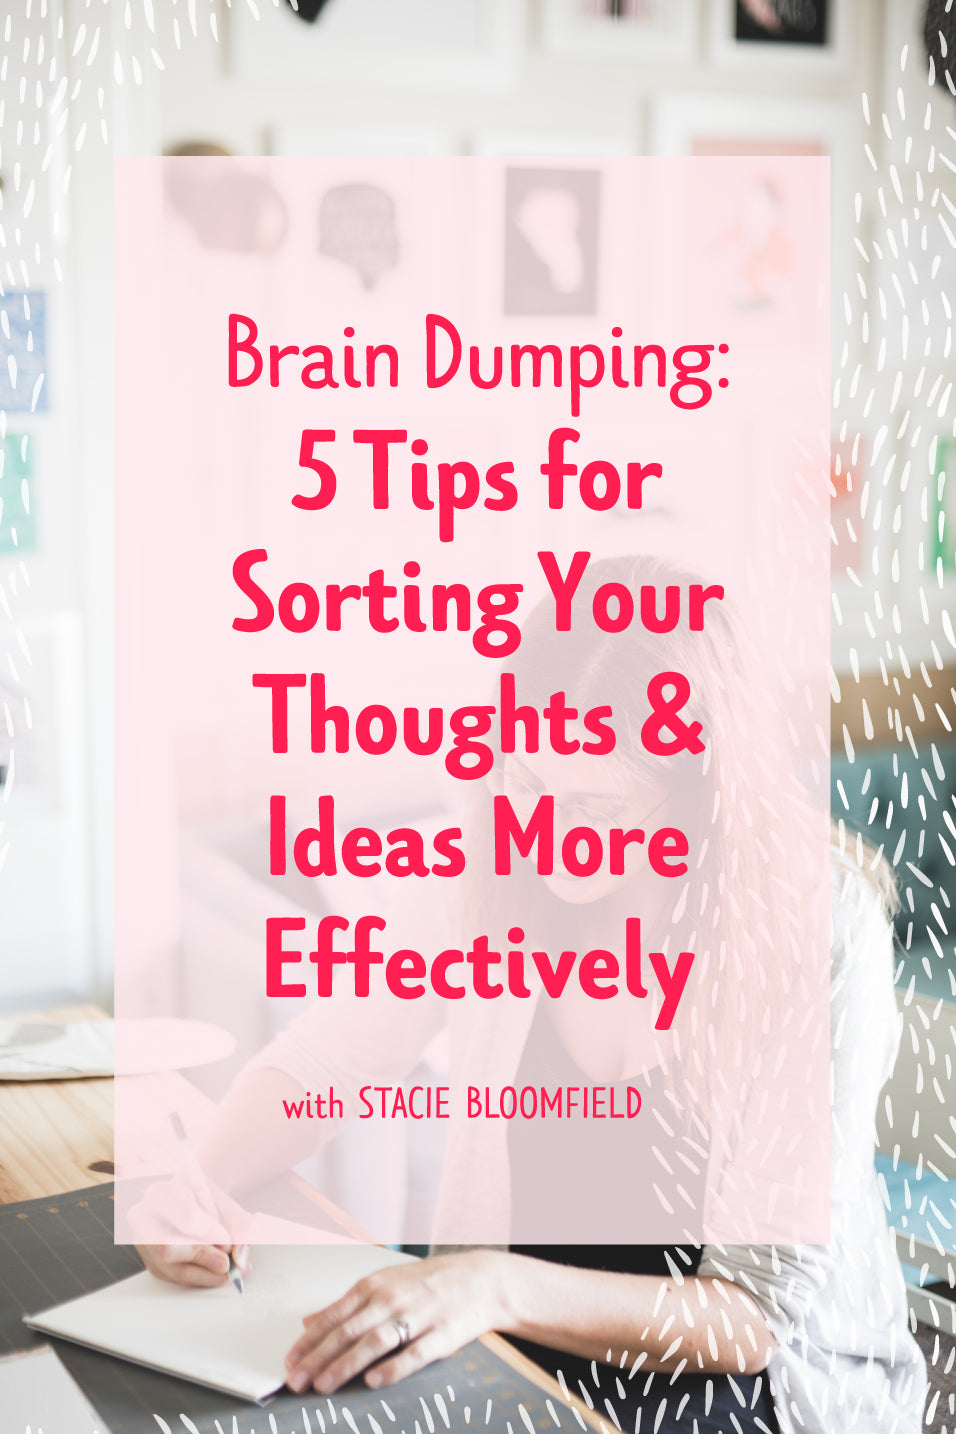 Brain Dumping! 5 Tips for Sorting Your Thoughts and Ideas More Effectively